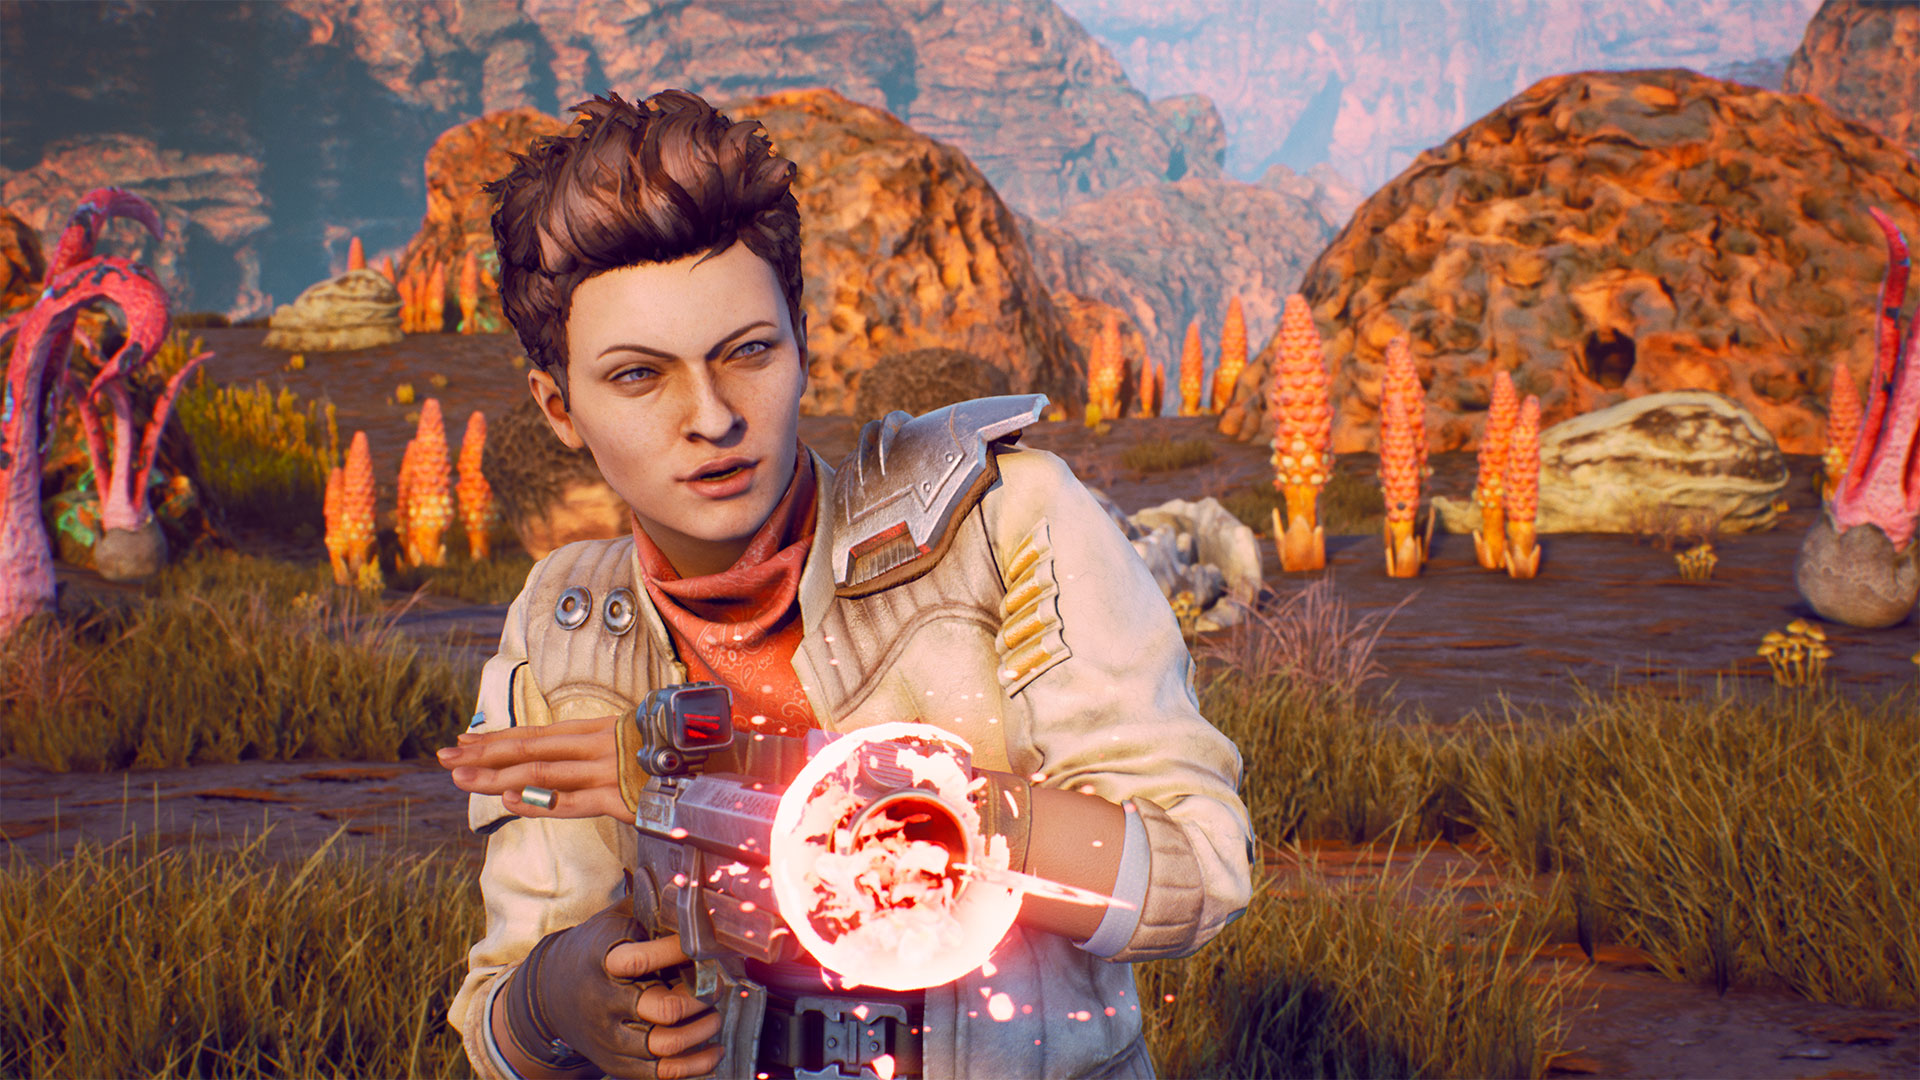 The Outer Worlds sequel seemingly in the works thumbnail